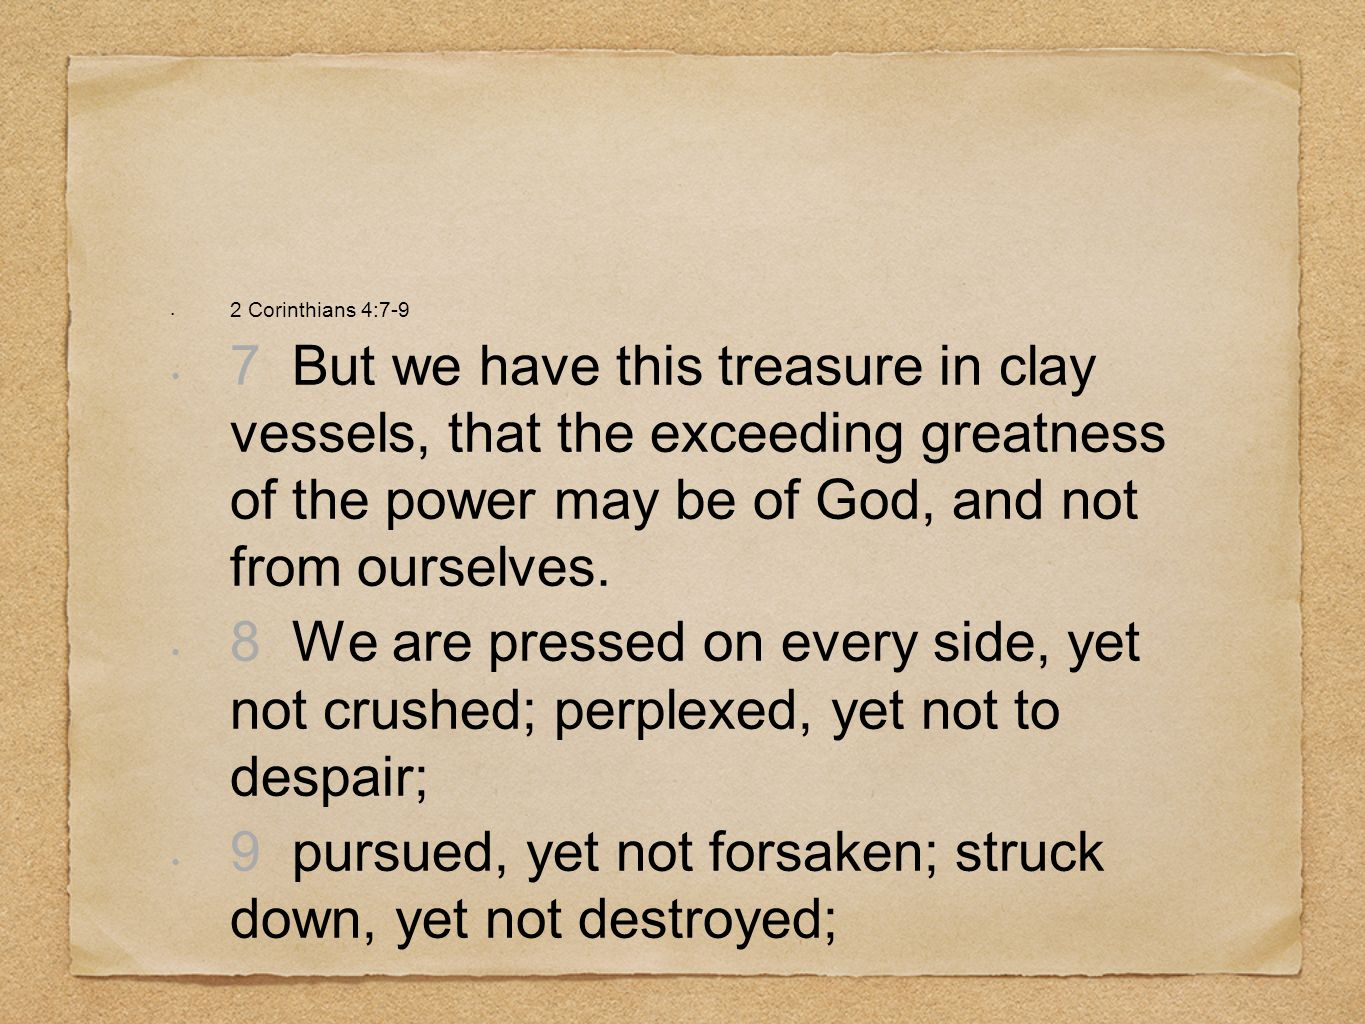 9 pursued, yet not forsaken; struck down, yet not destroyed;